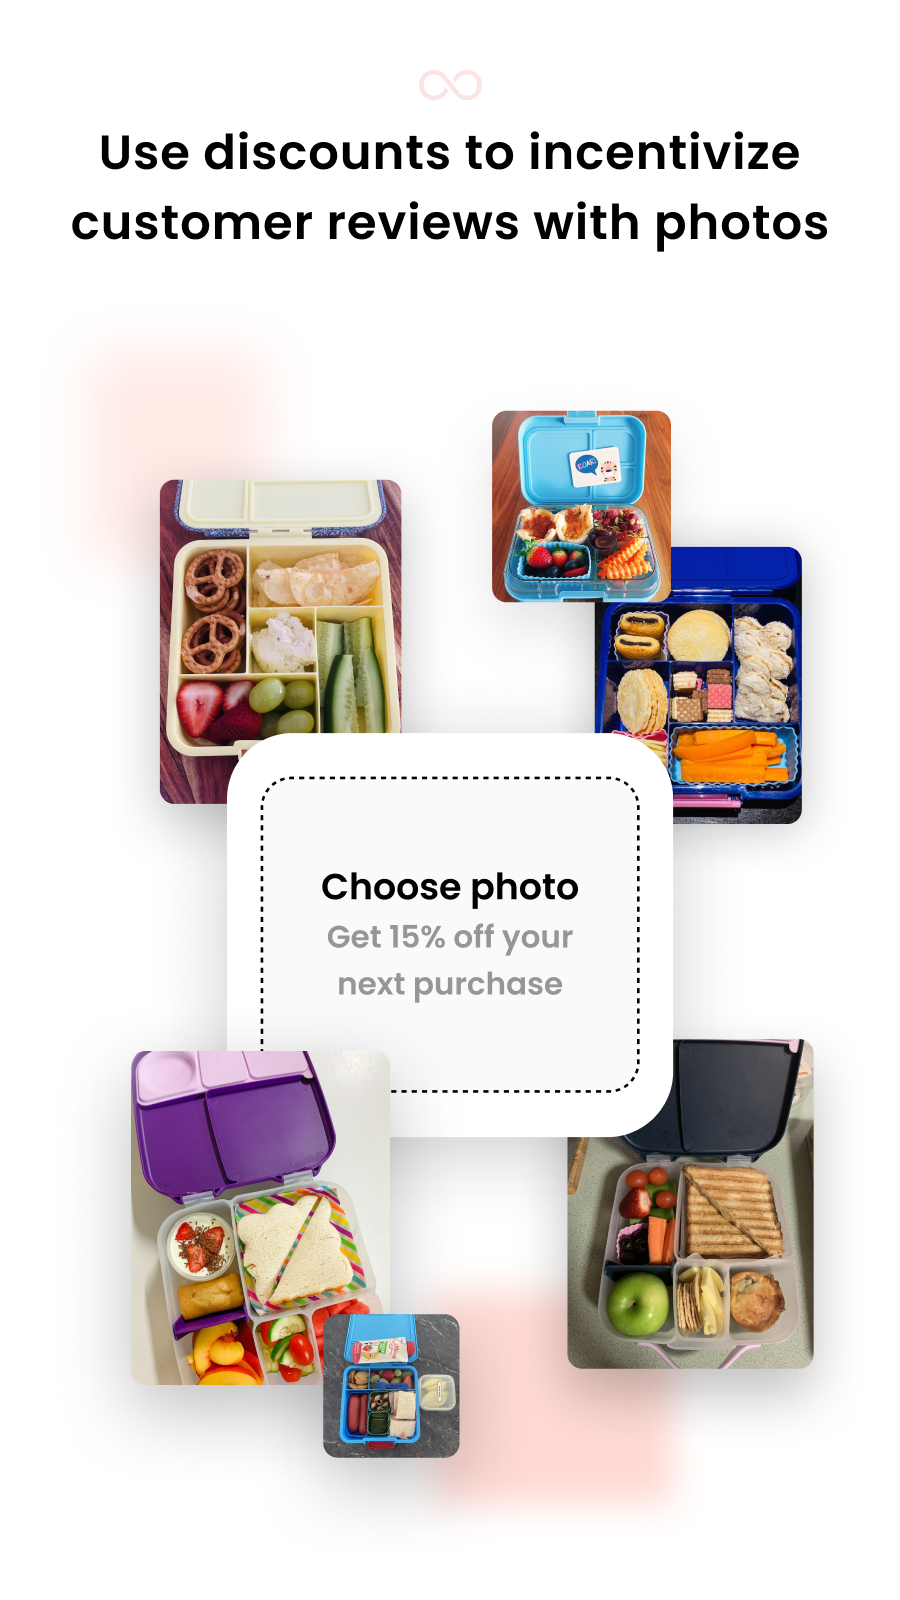 Use discounts to incentivize customers to add photos to reviews